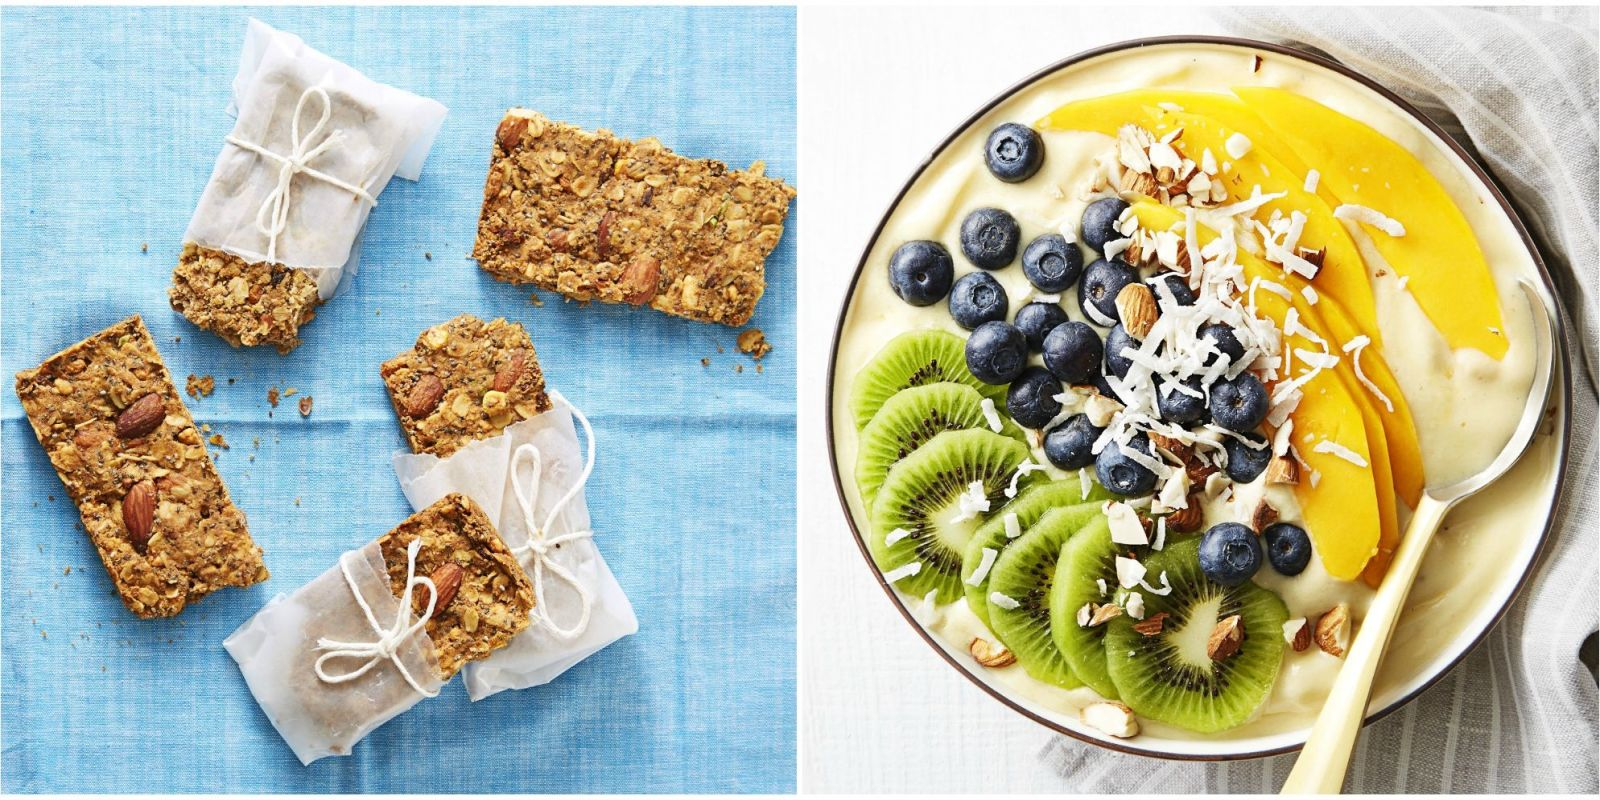 43 Easy Healthy Breakfast Ideas Recipes For Quick And Healthy Breakfasts